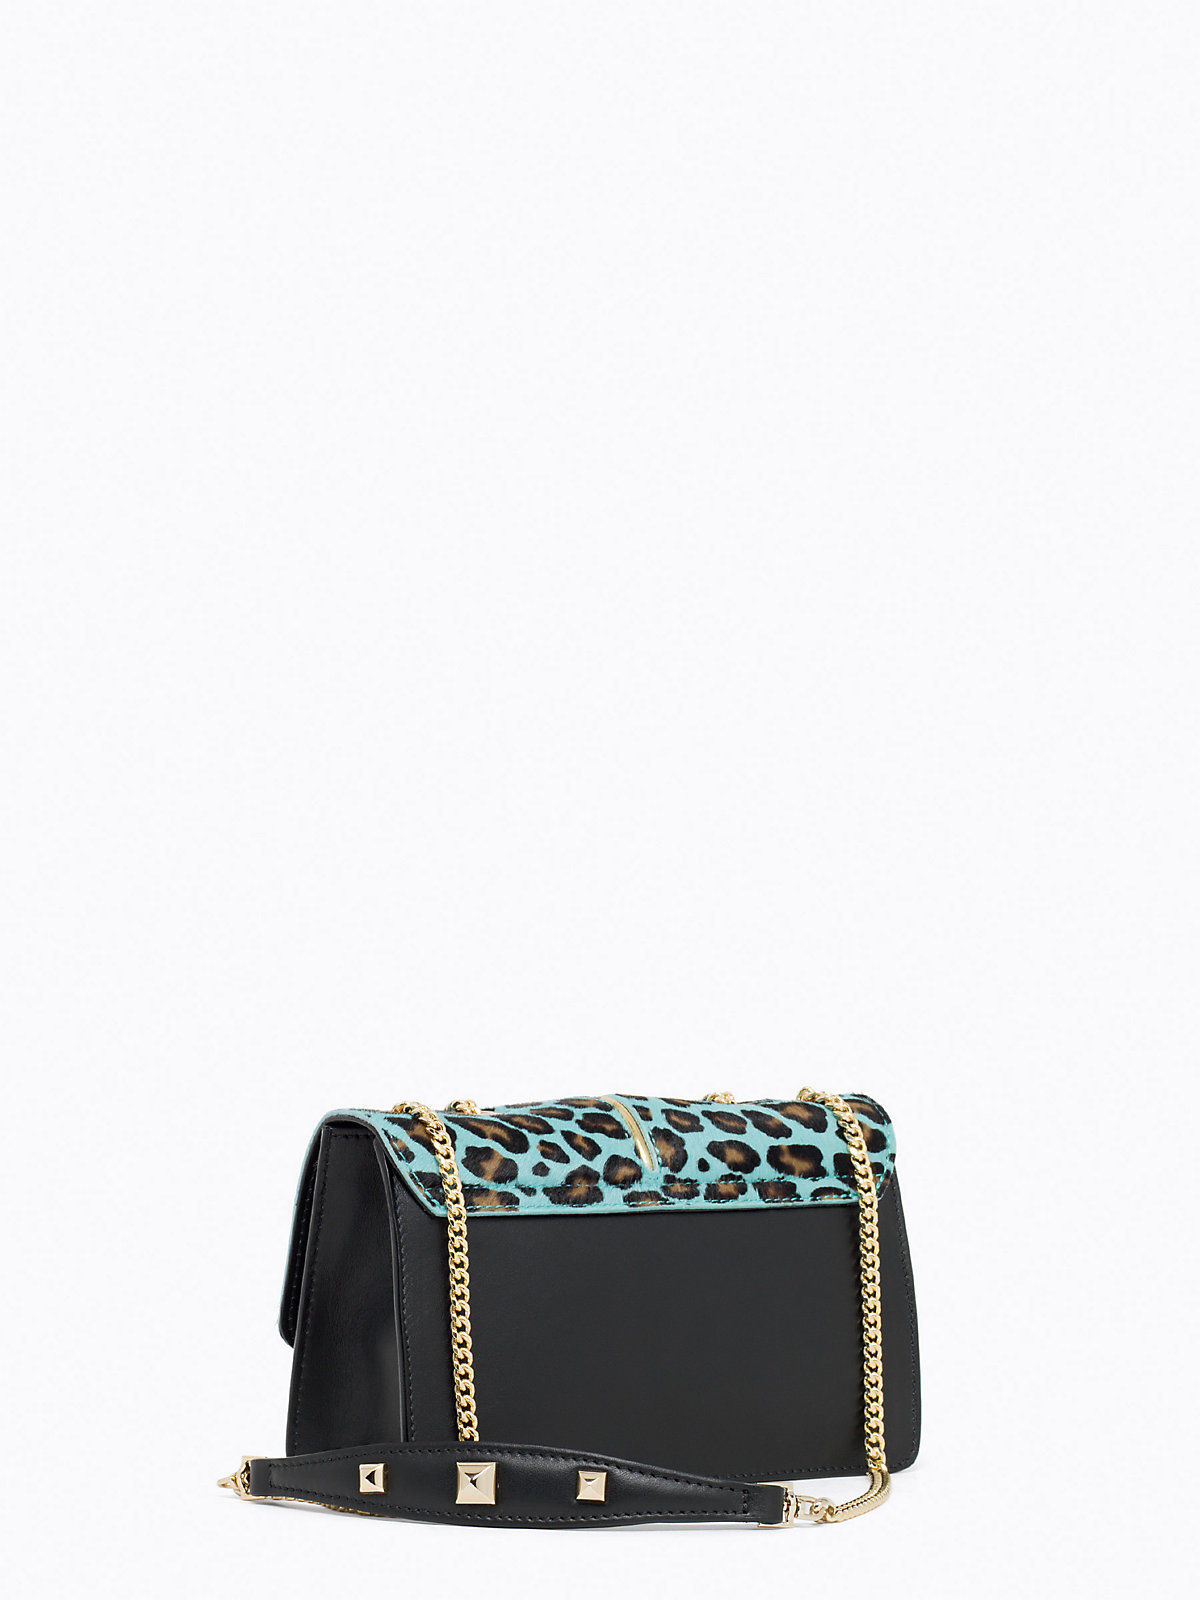 chloe handbags knockoffs - georgia bumbag in leopard print haircalf (pony) and smooth calfskin